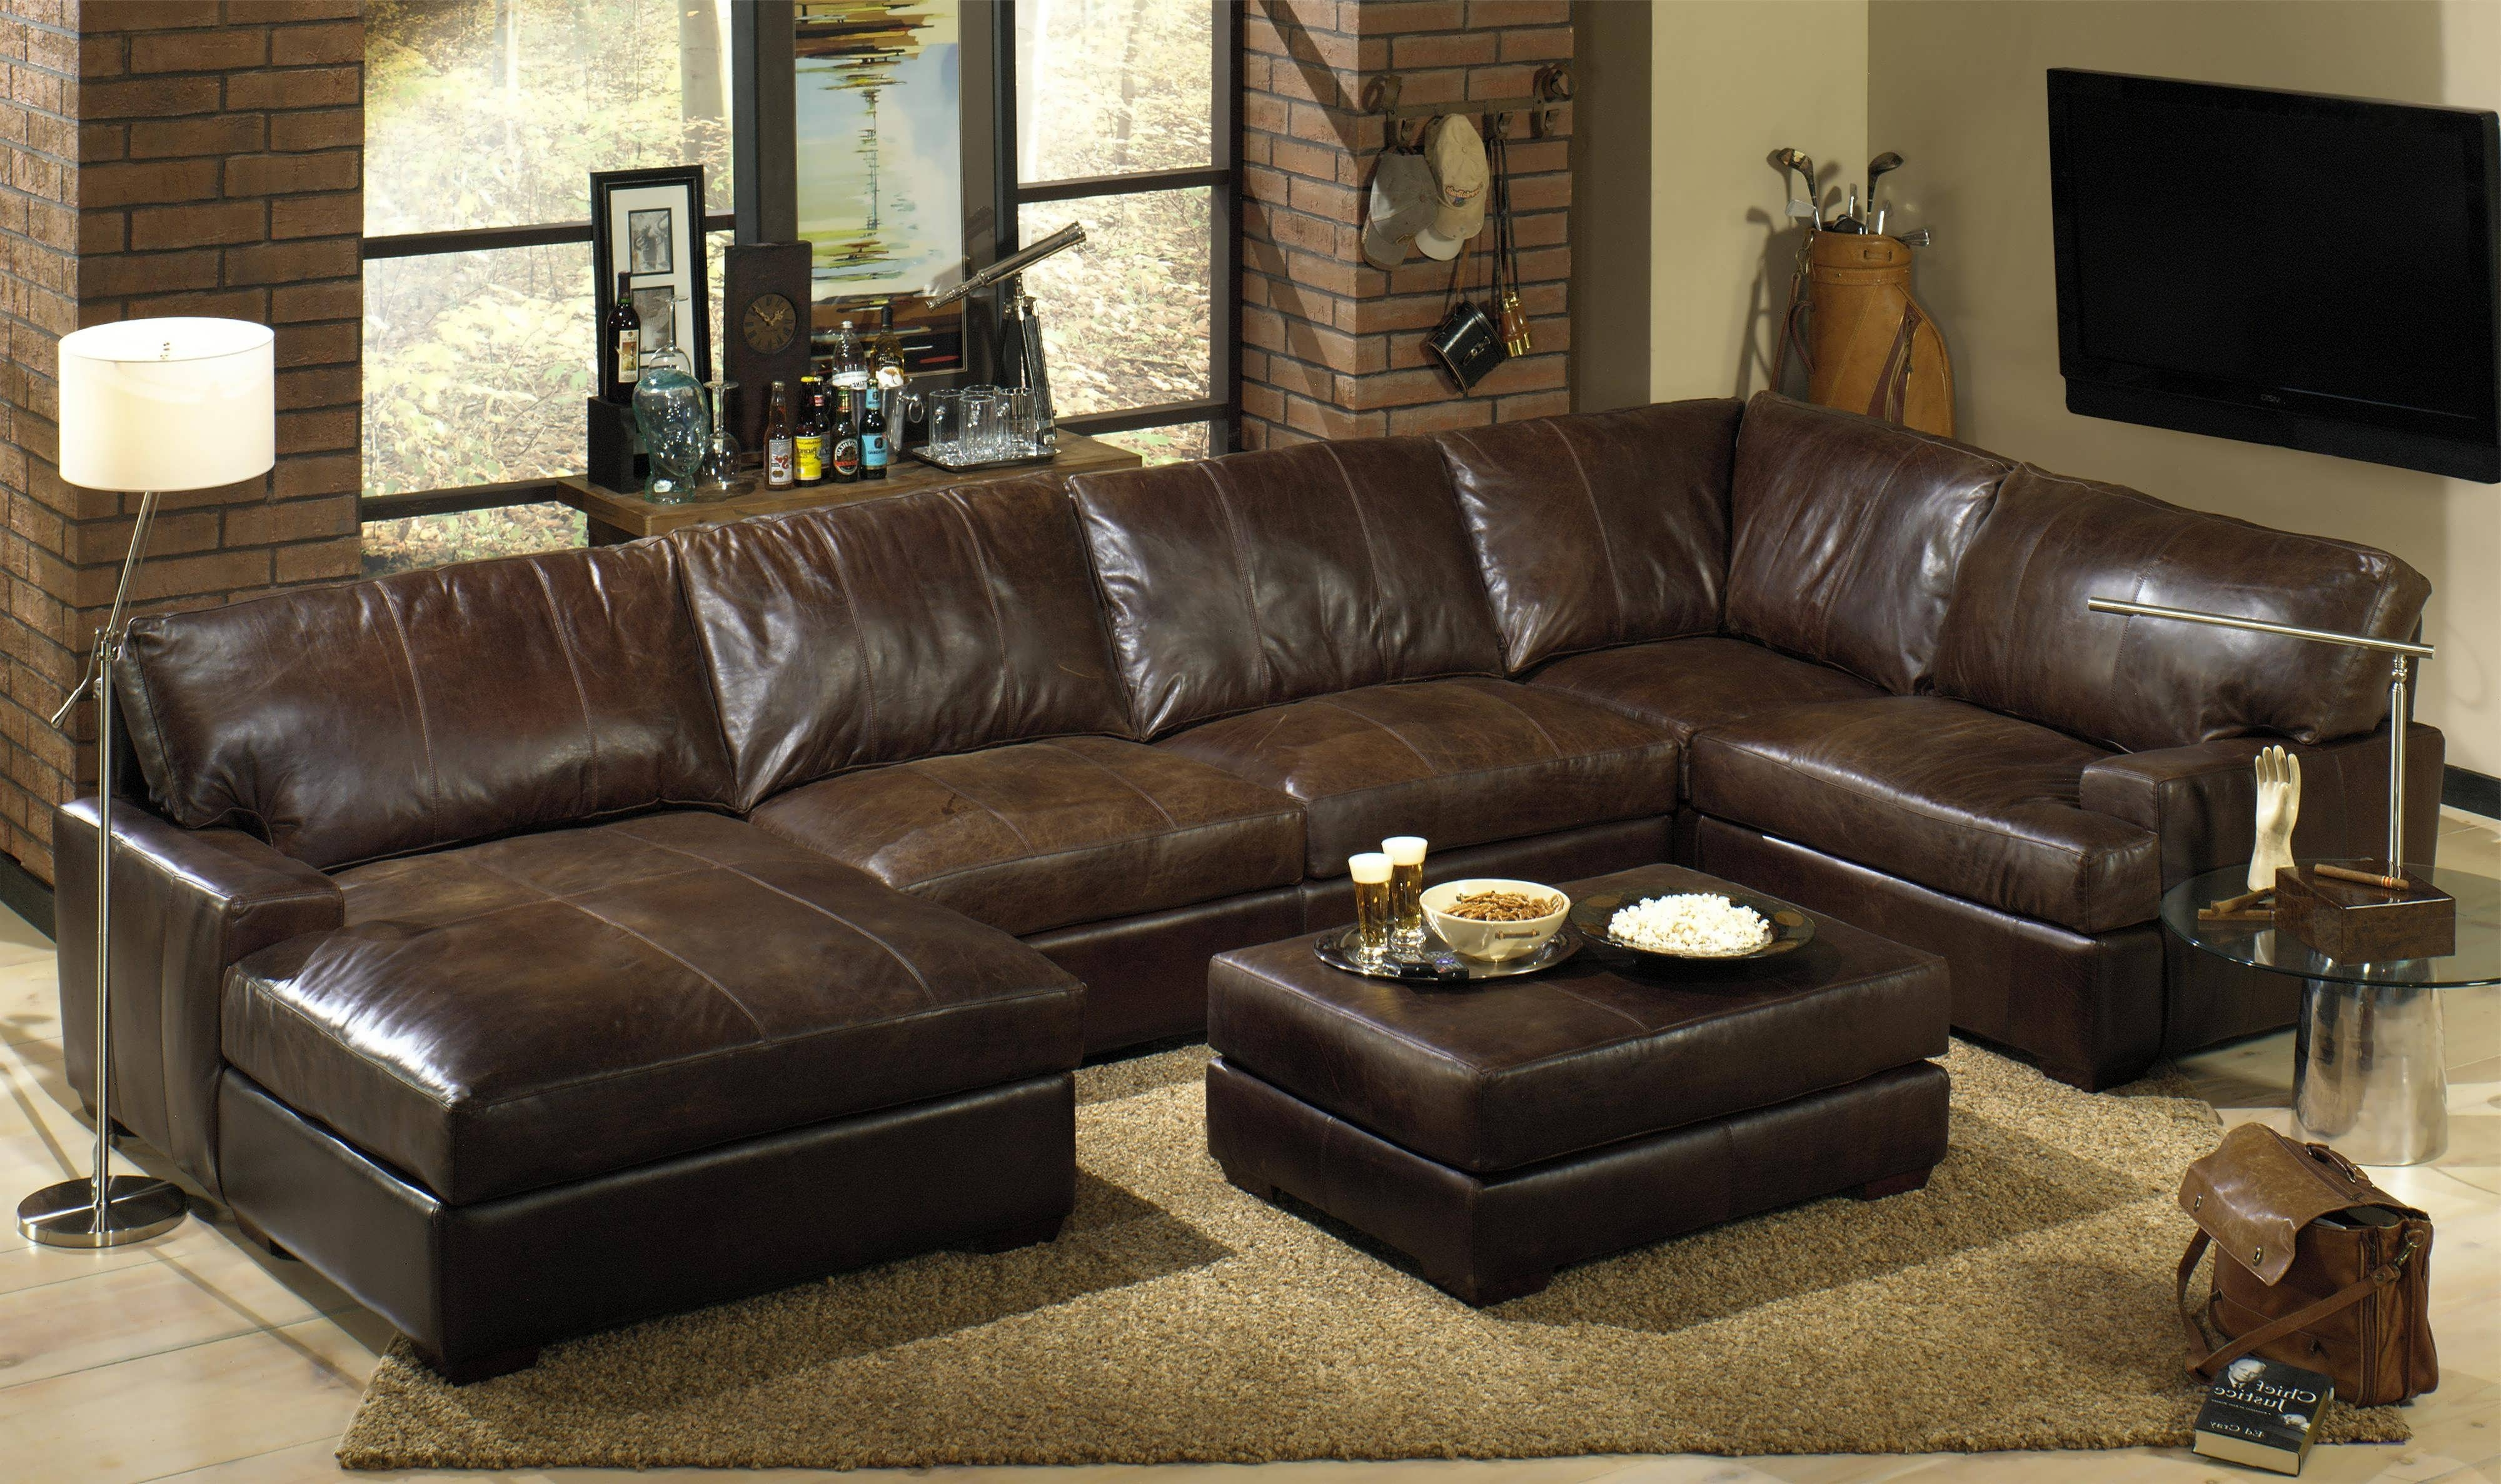 Leather Sofas With Chaise In Well Known Sofa : Chaise Sofa Sectional With Chaise And Recliner White (View 7 of 15)